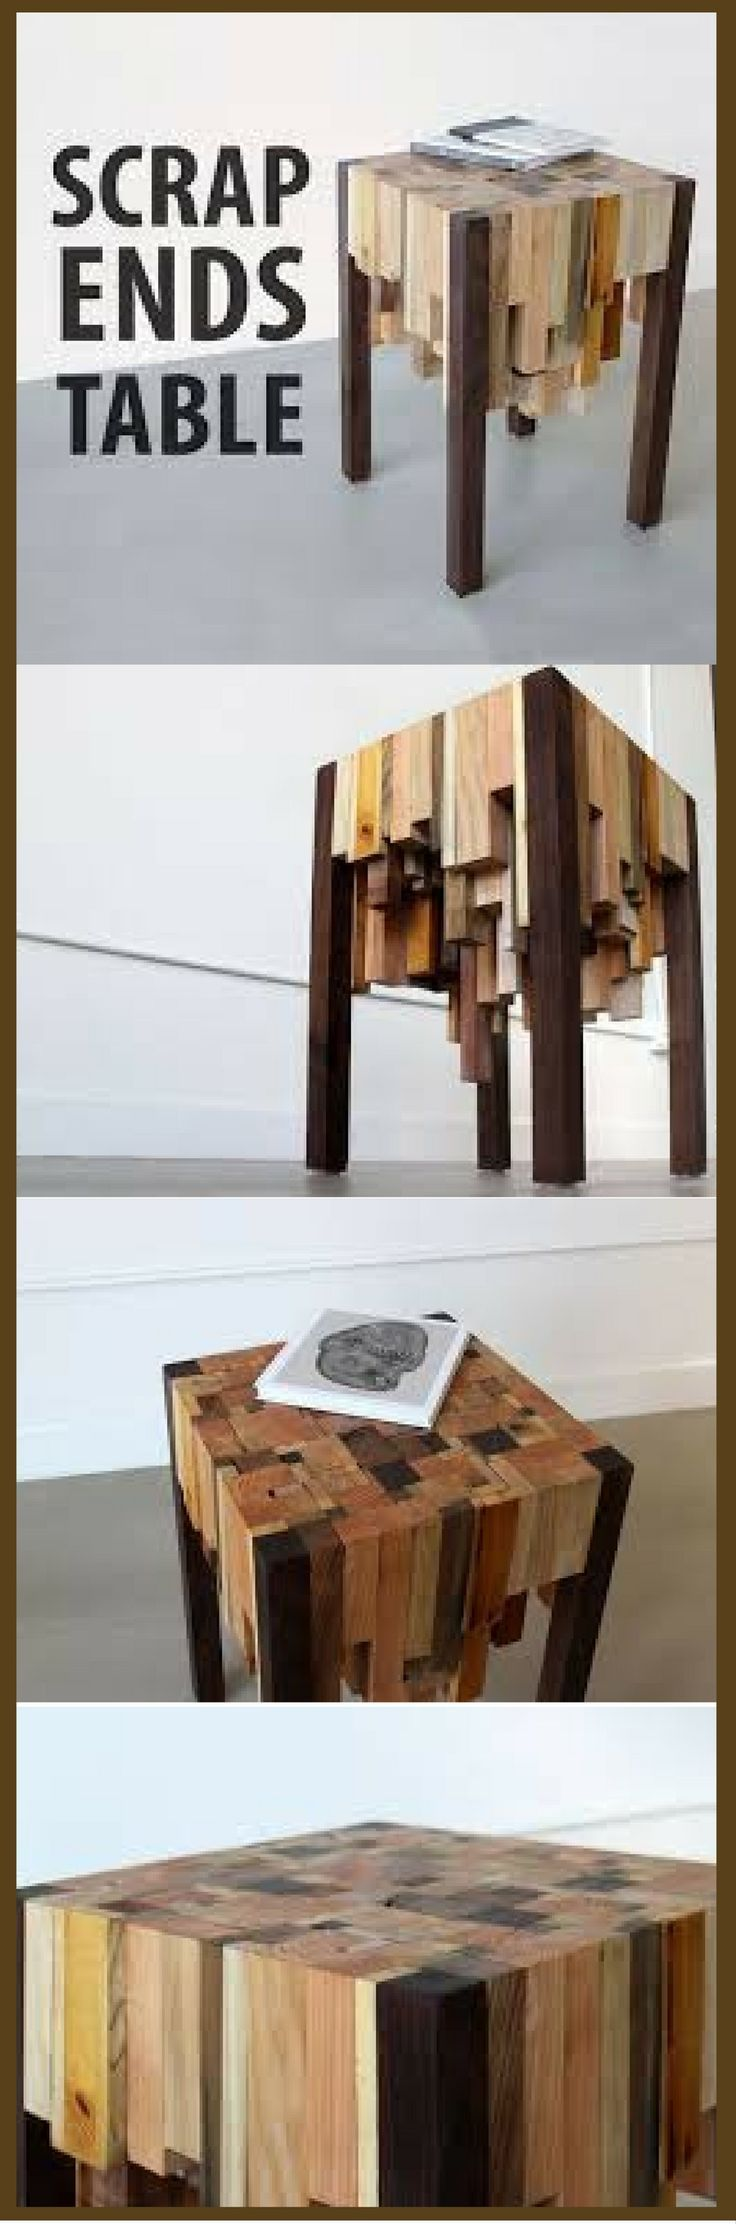 Make a great little table with scrap ends. Waste not Want not http://vid.staged.com/UxYs